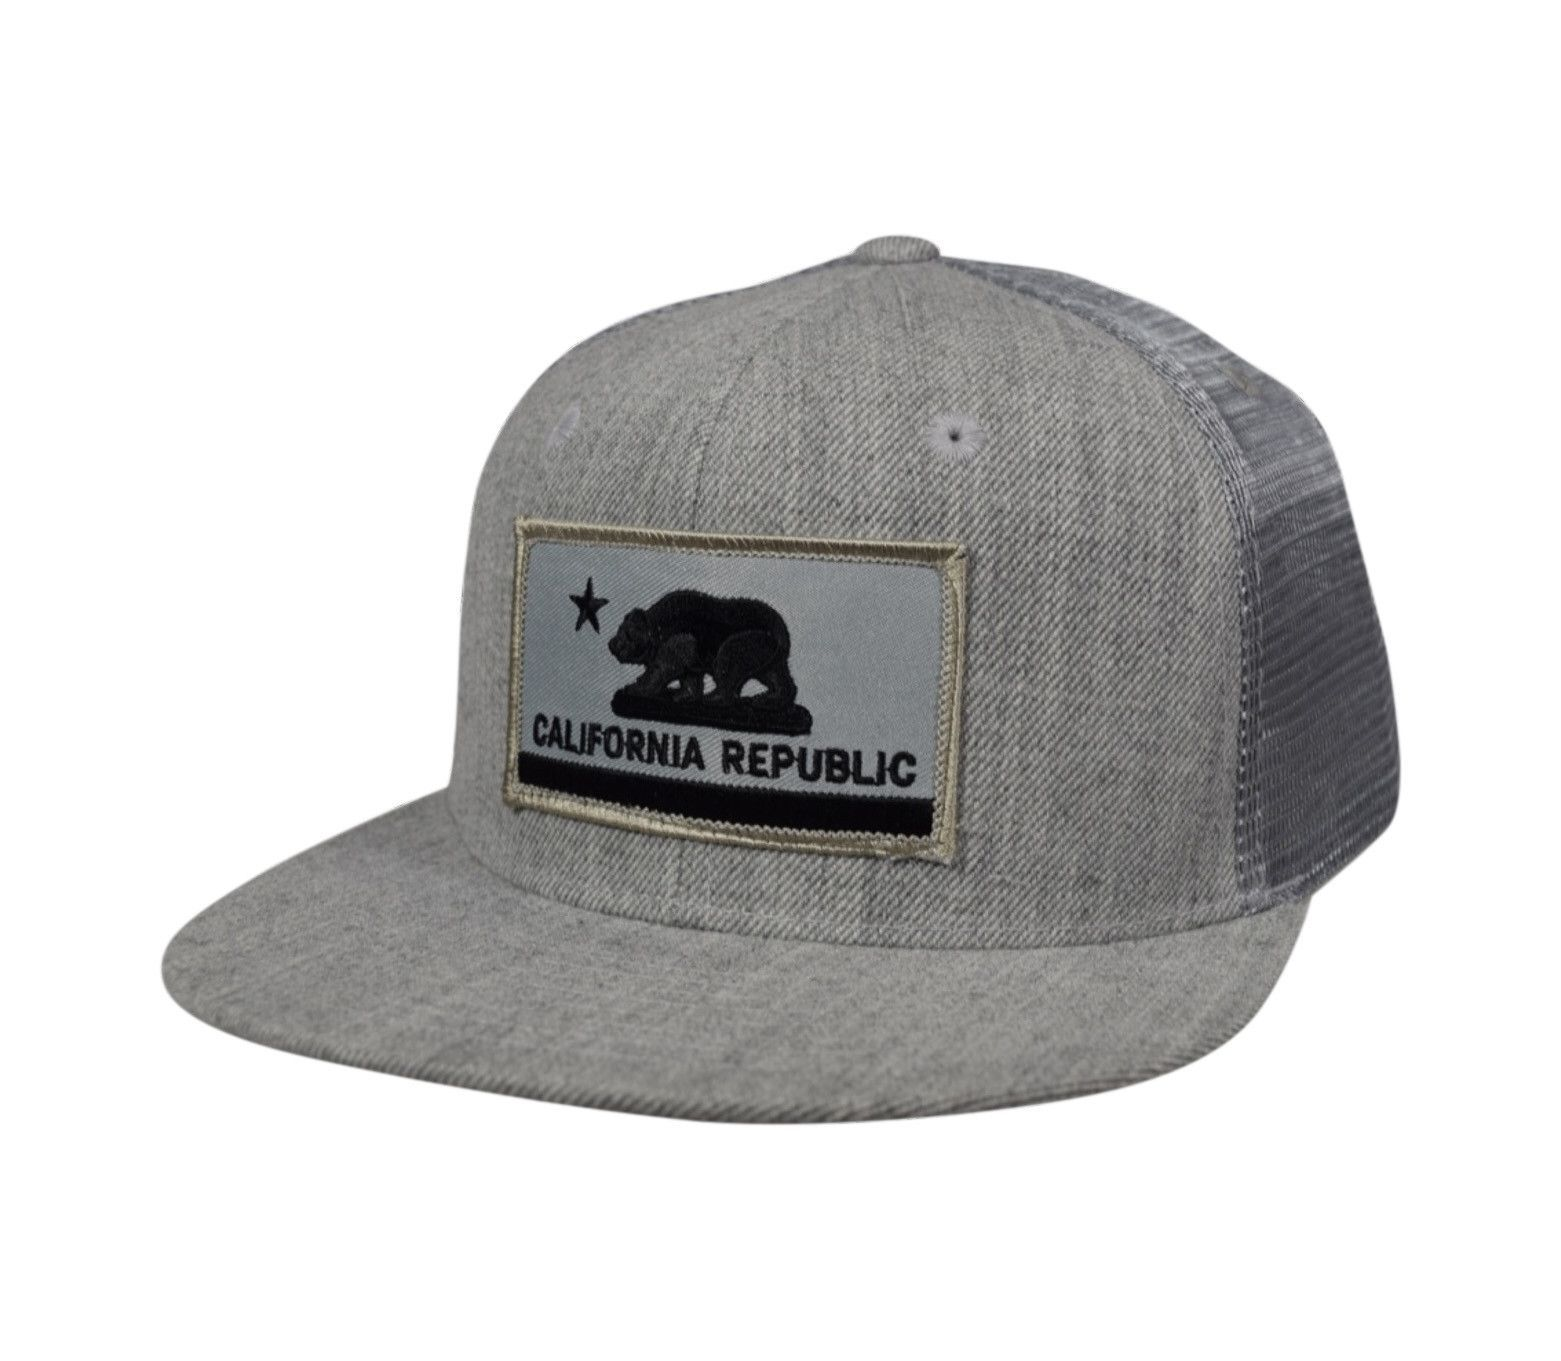 5bd47e220d7d9 ... cap with adjustable norway california republic flag trucker hat by lets  be irie heather gray d0ddd 0e5b4 ...